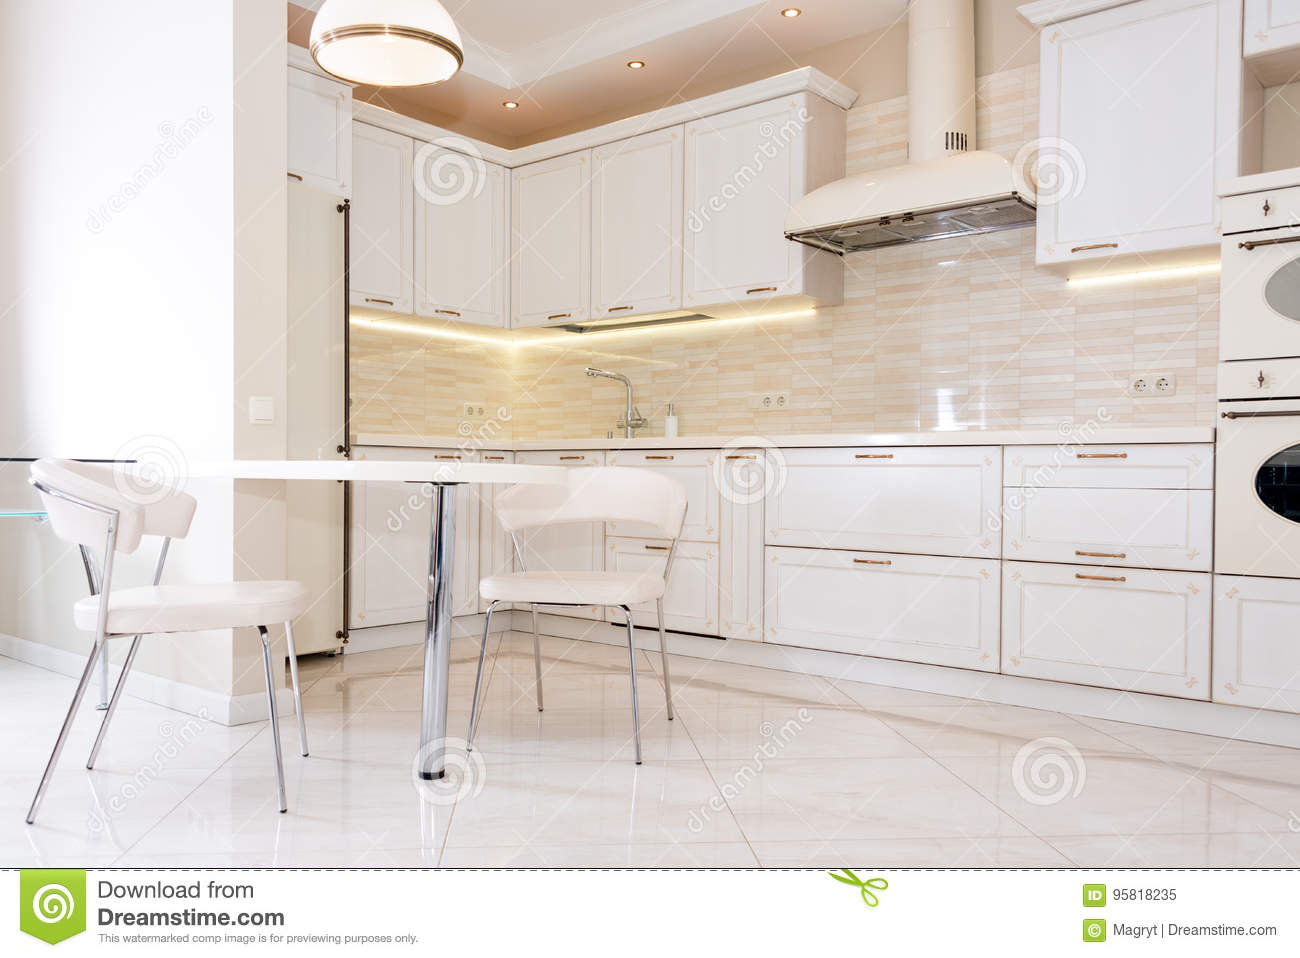 Modern Bright Clean Kitchen Interior In A Luxury House Interior Design With Classic Or